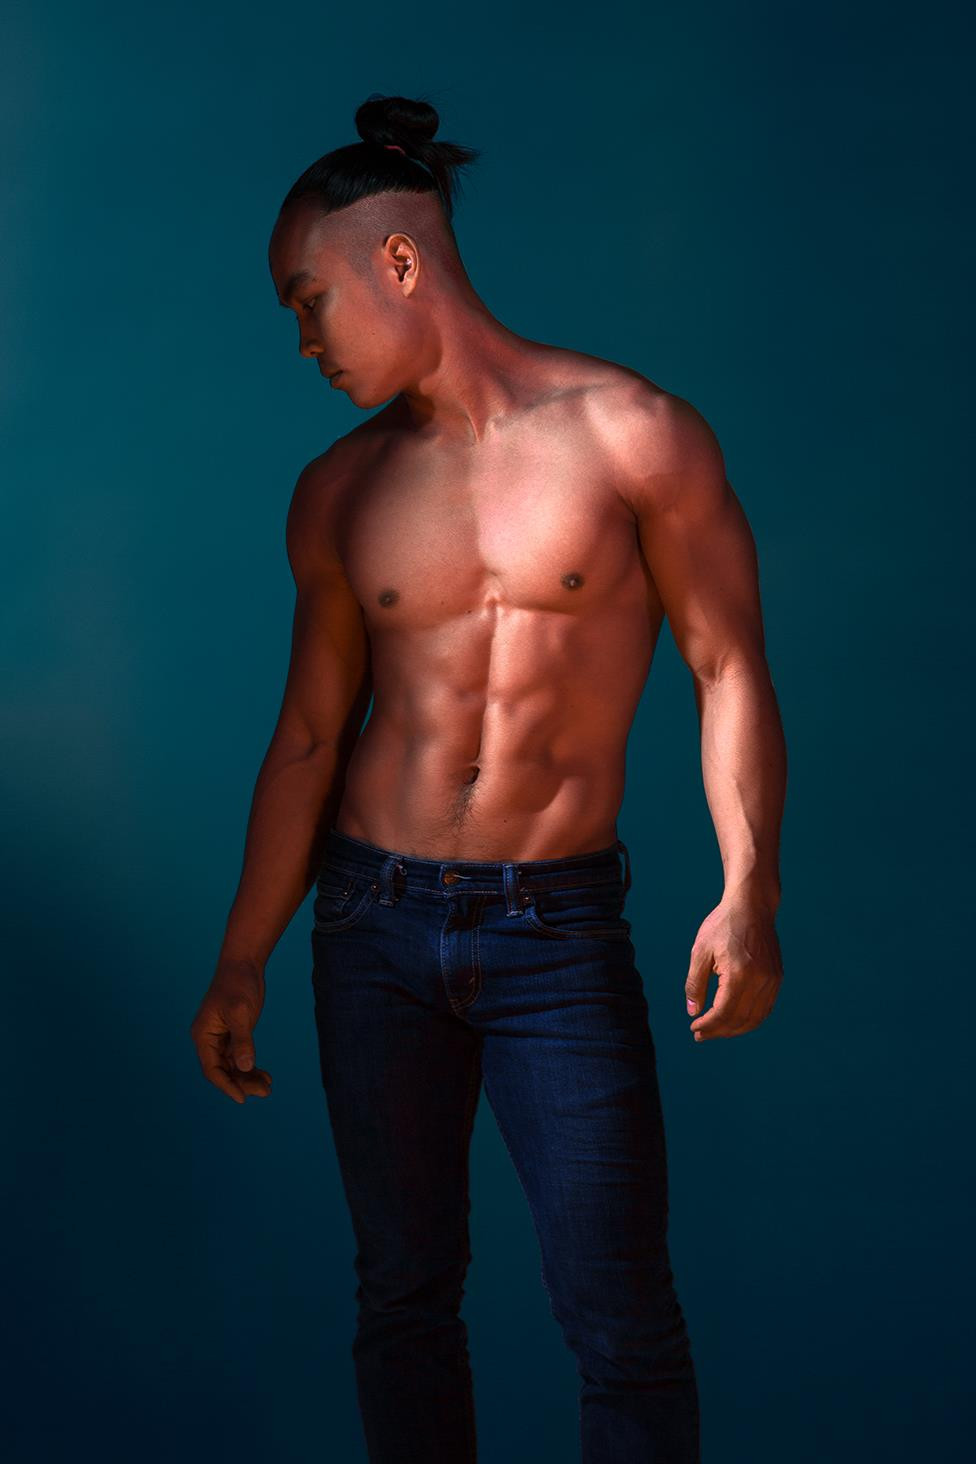 Physique Photograph with steep light falloff